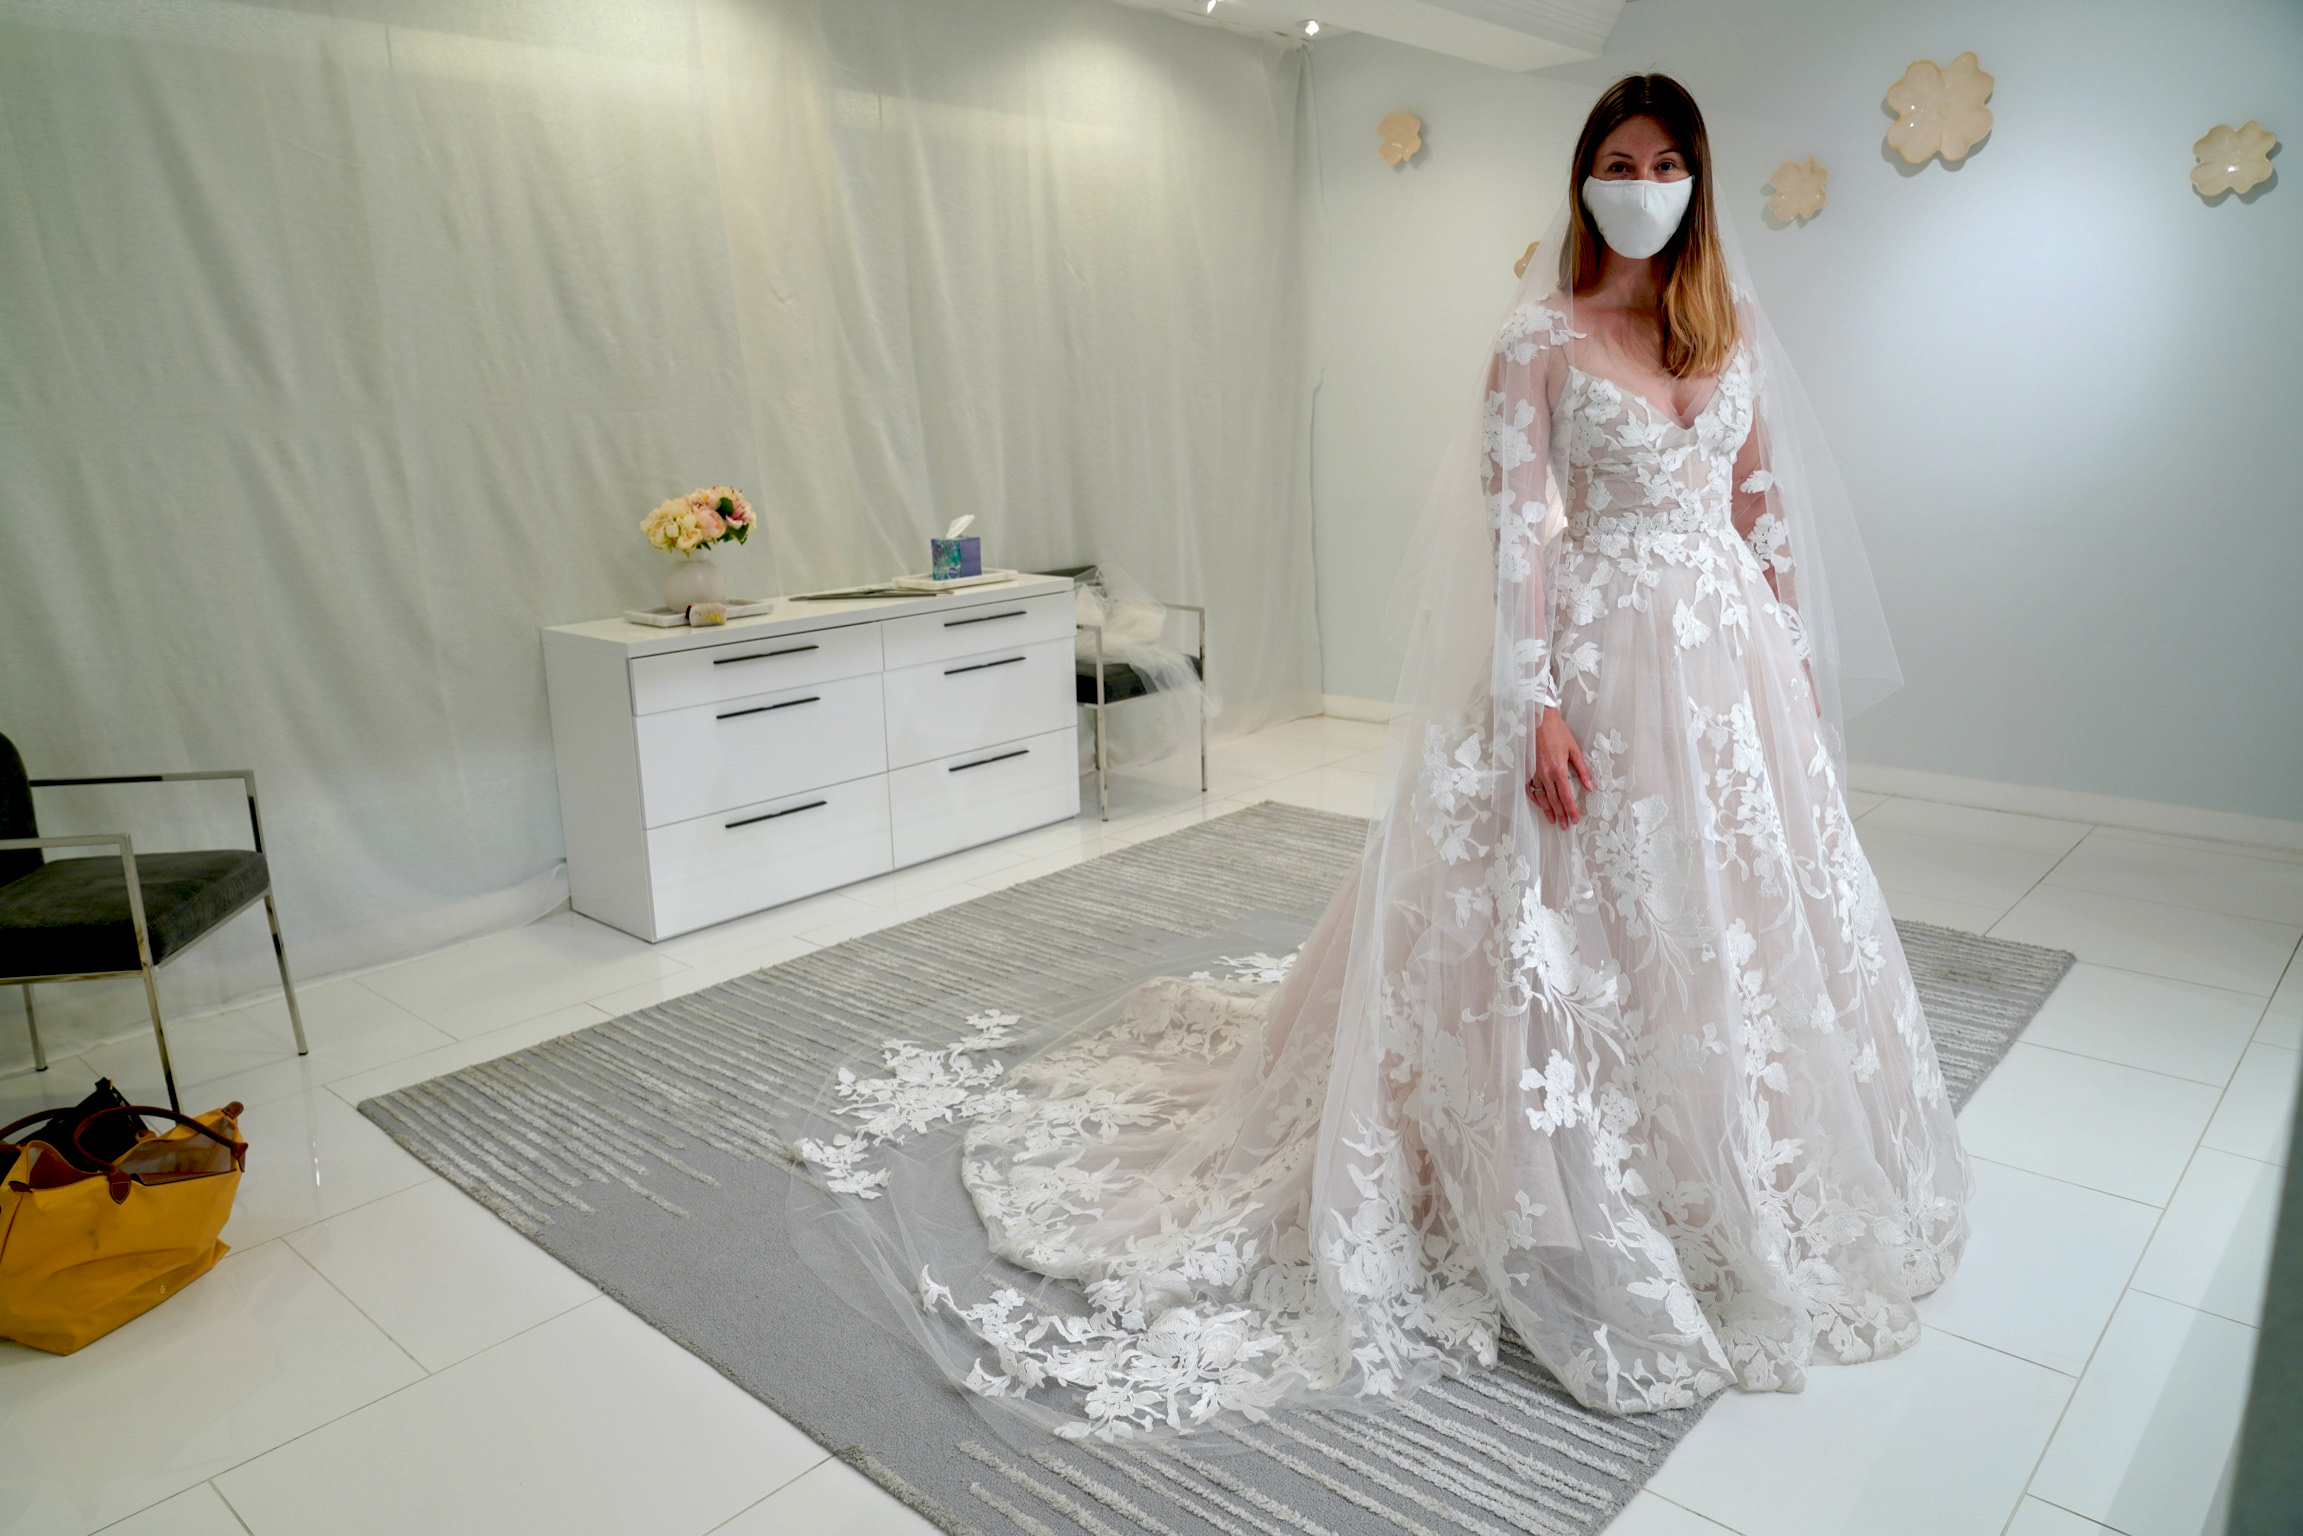 How to Shop for a Wedding Dress During the COVID-19 Pandemic.